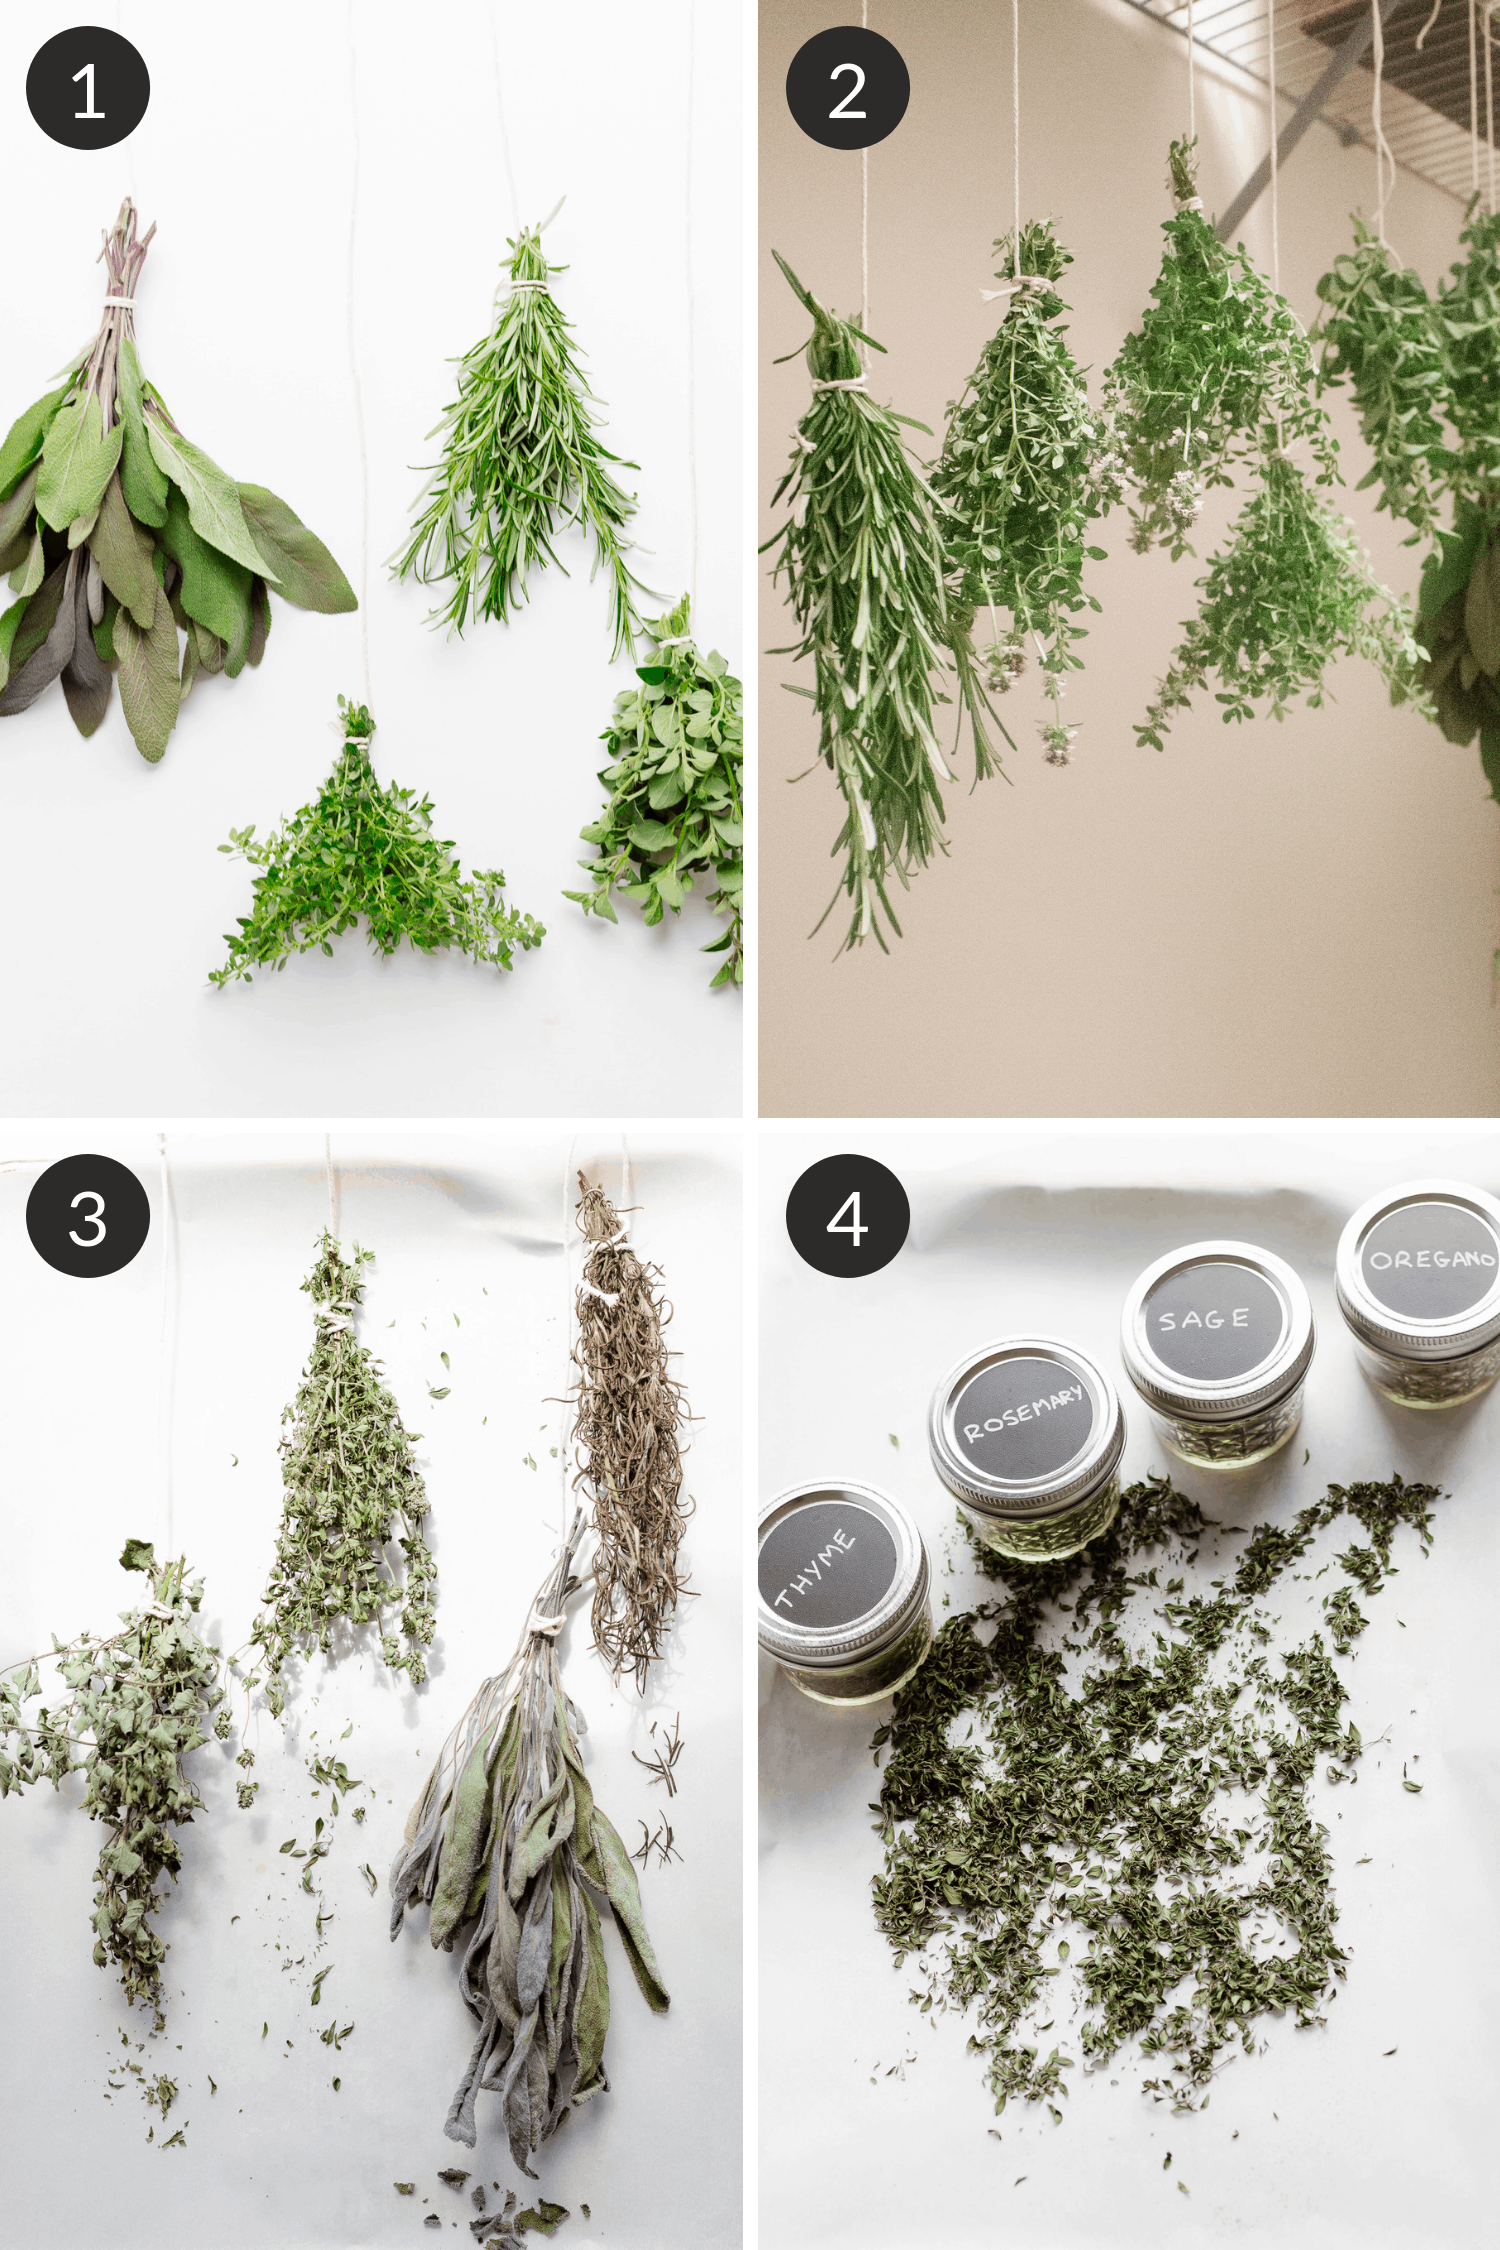 Collage of process on how to dry fresh herbs